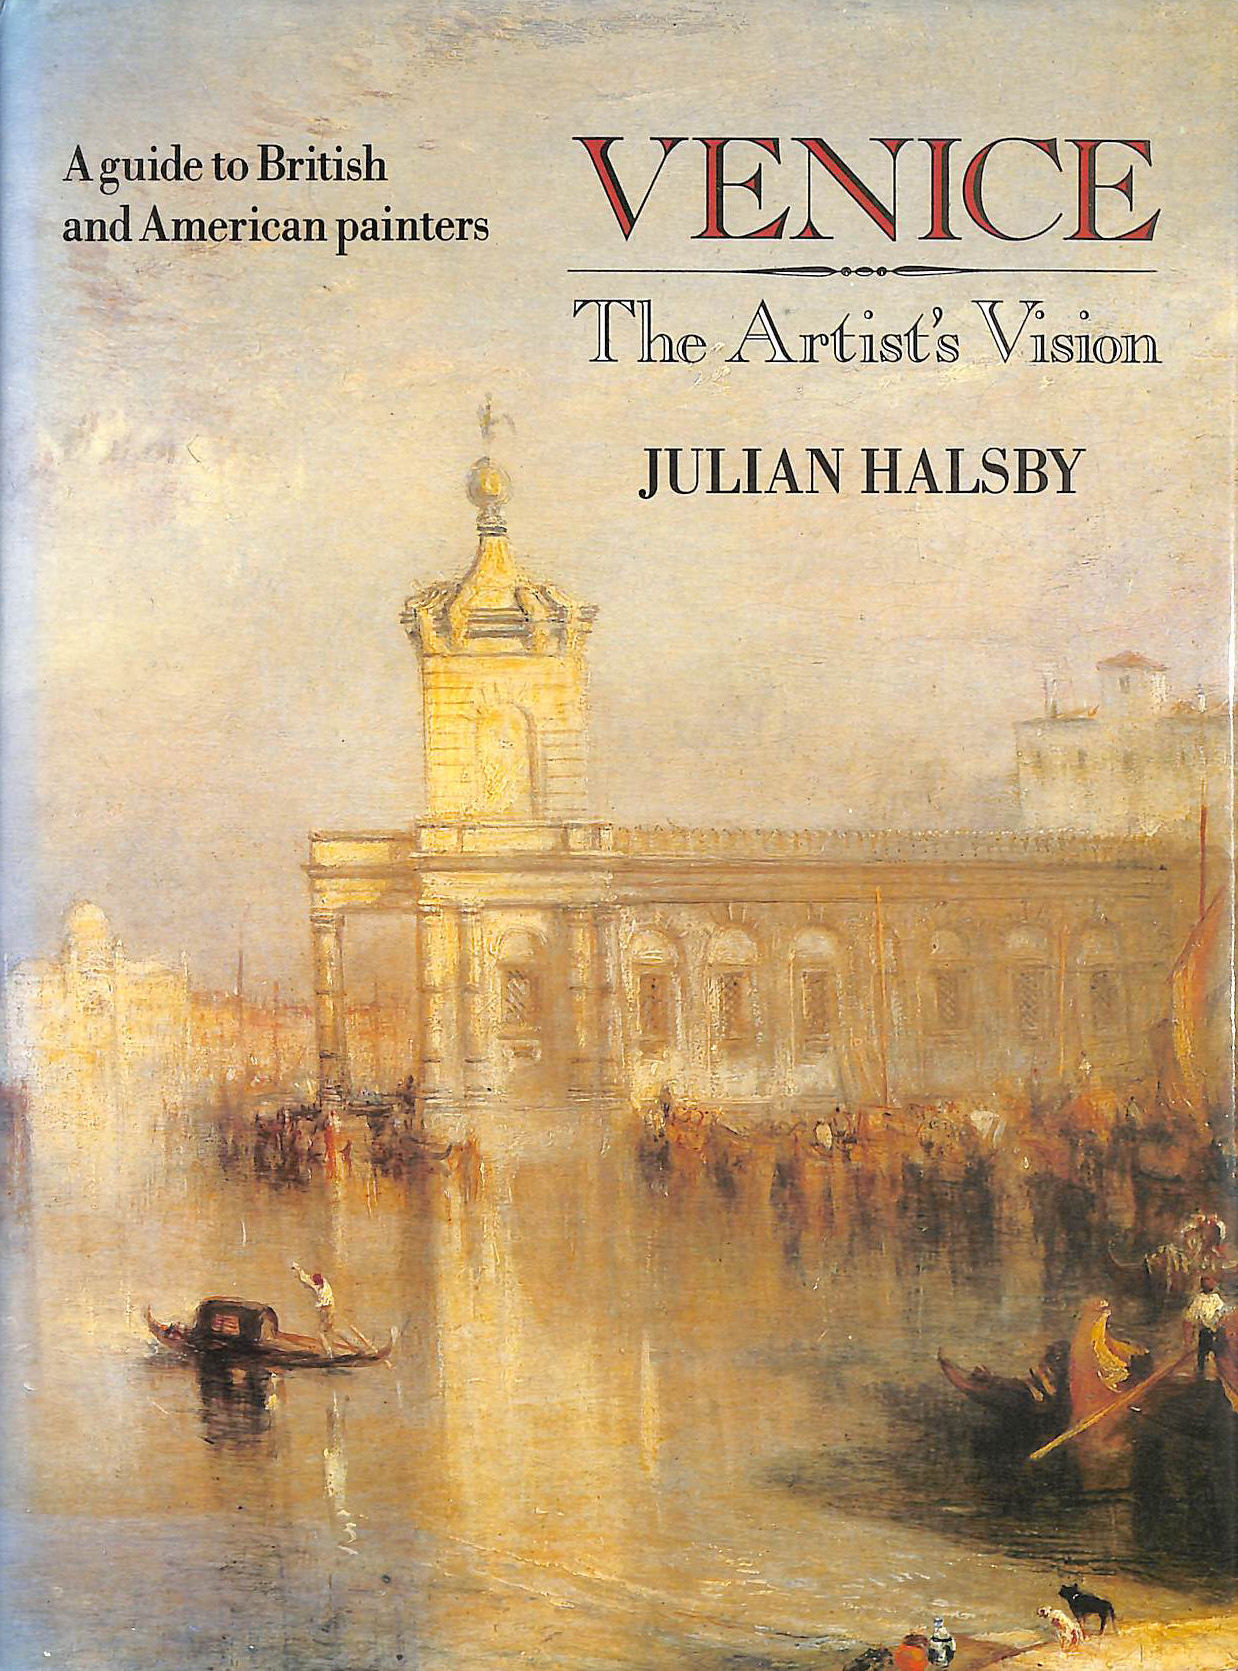 HALSBY, JULIAN - Venice The Artist's Vision: The Artist's Vision - A Guide to British and American Painters